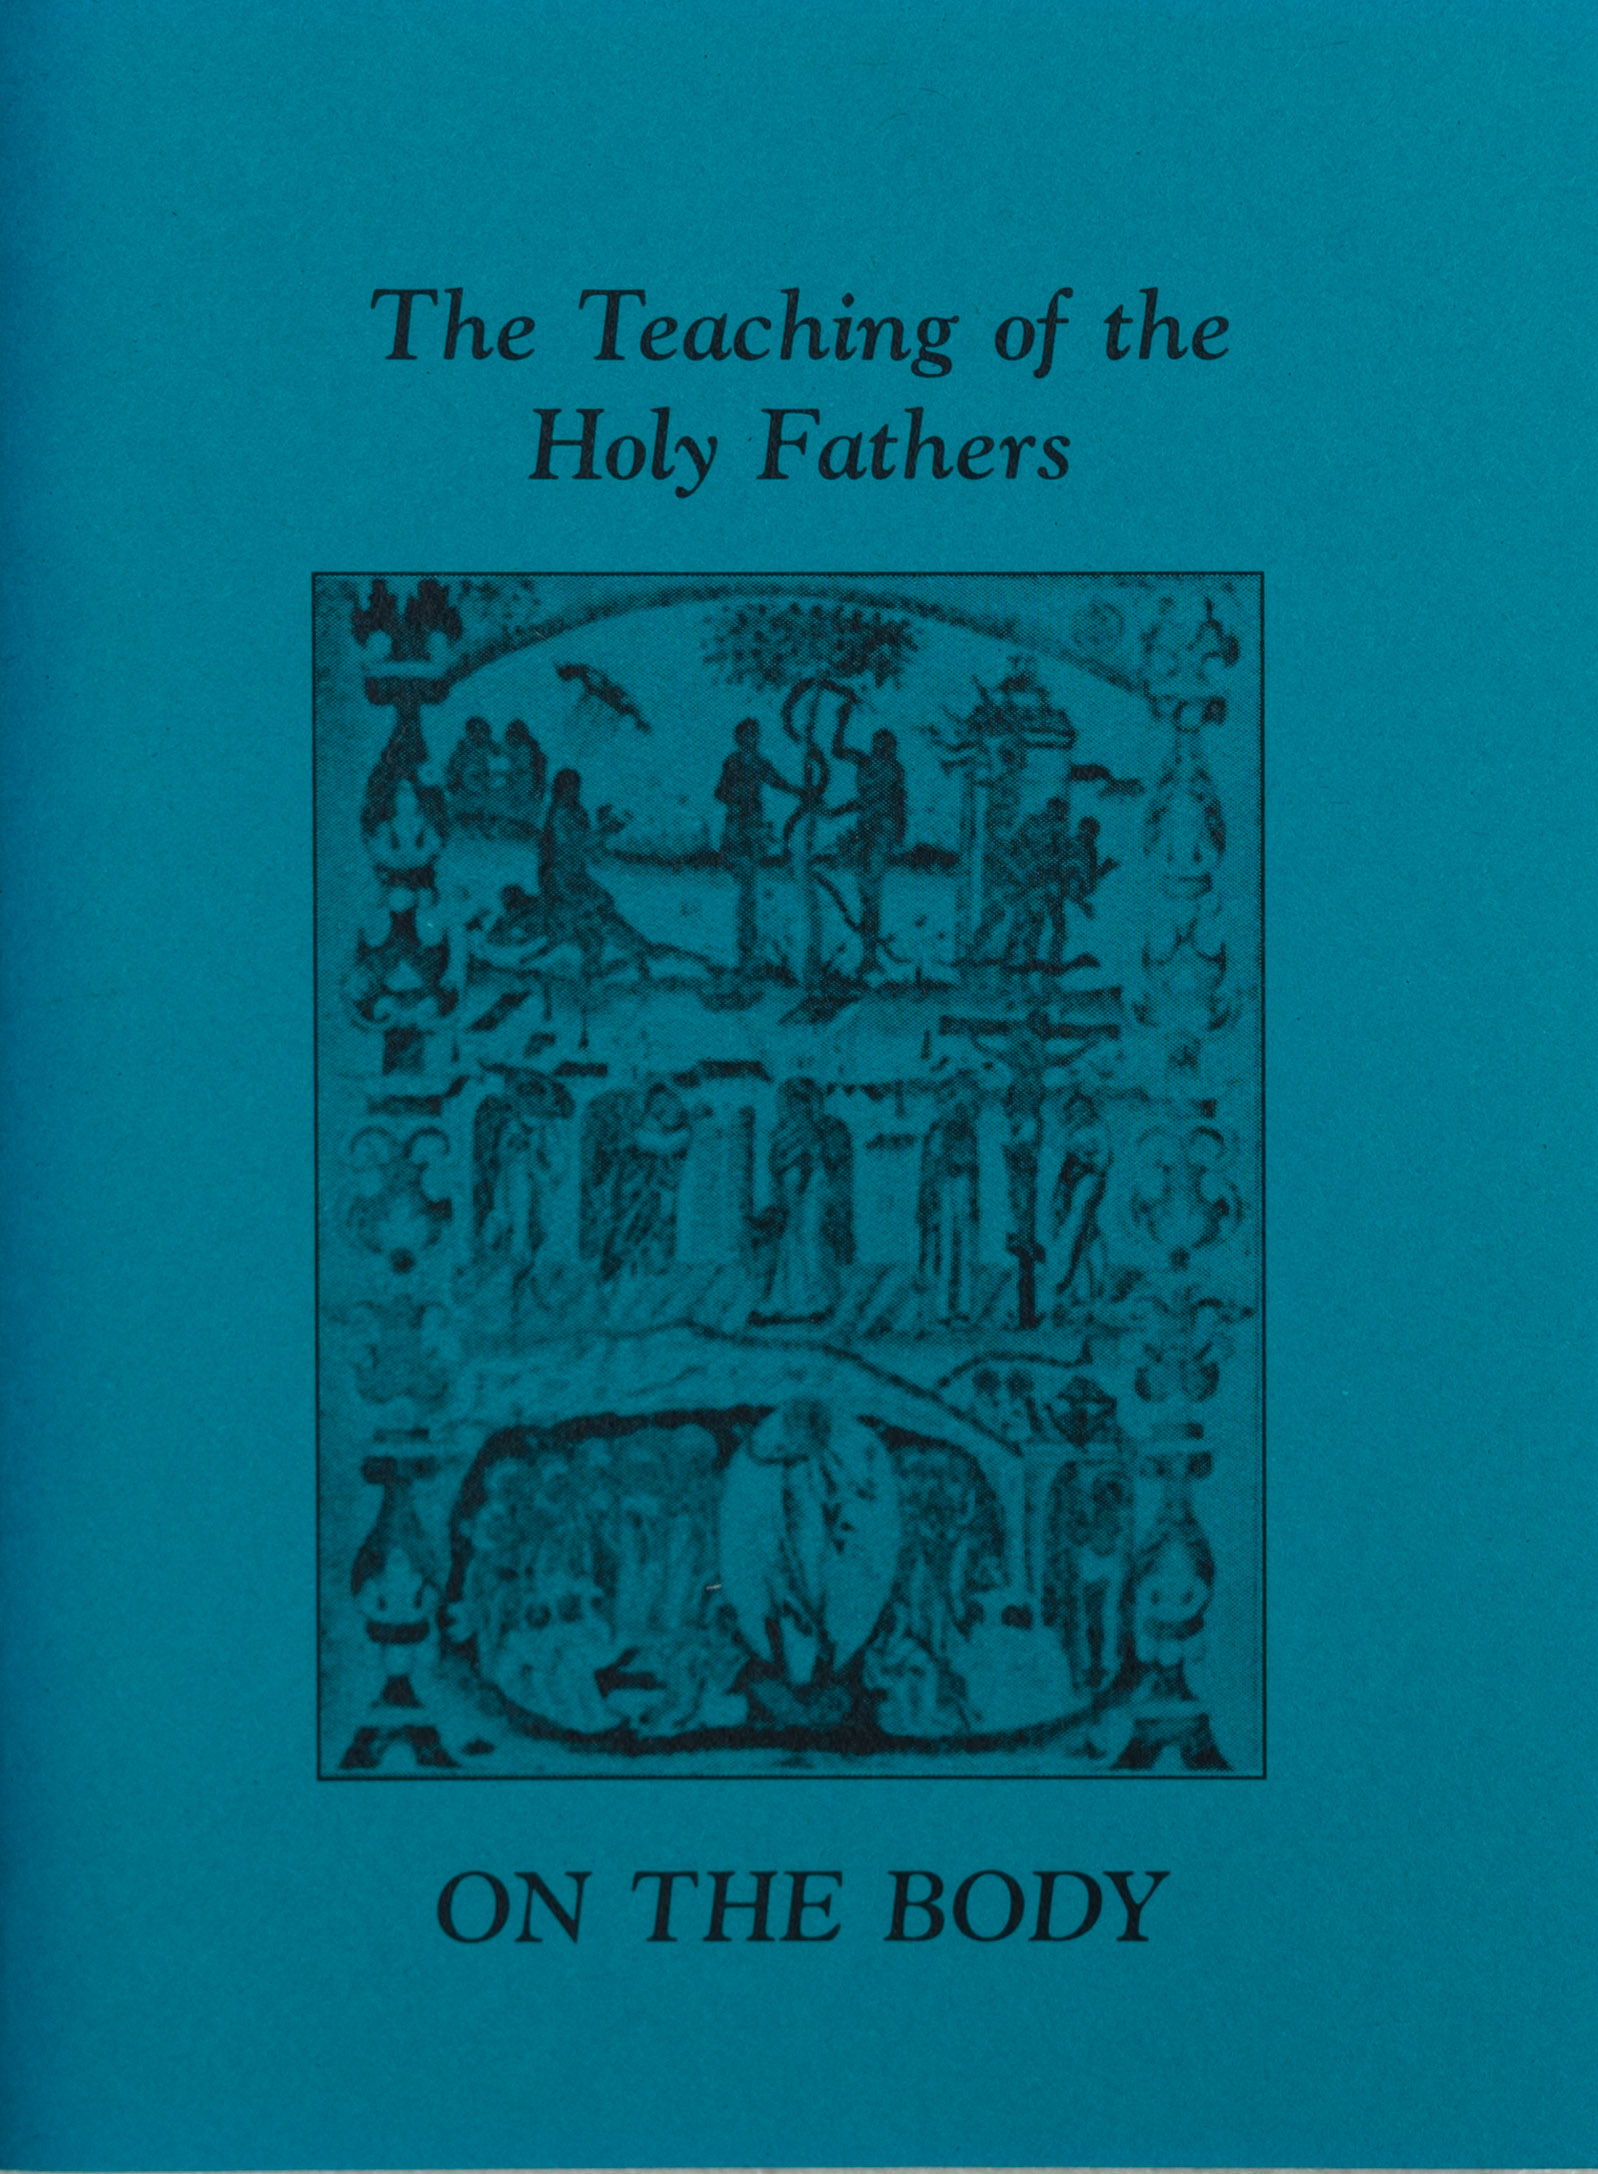 The Teaching of the Holy Fathers ON THE BODY